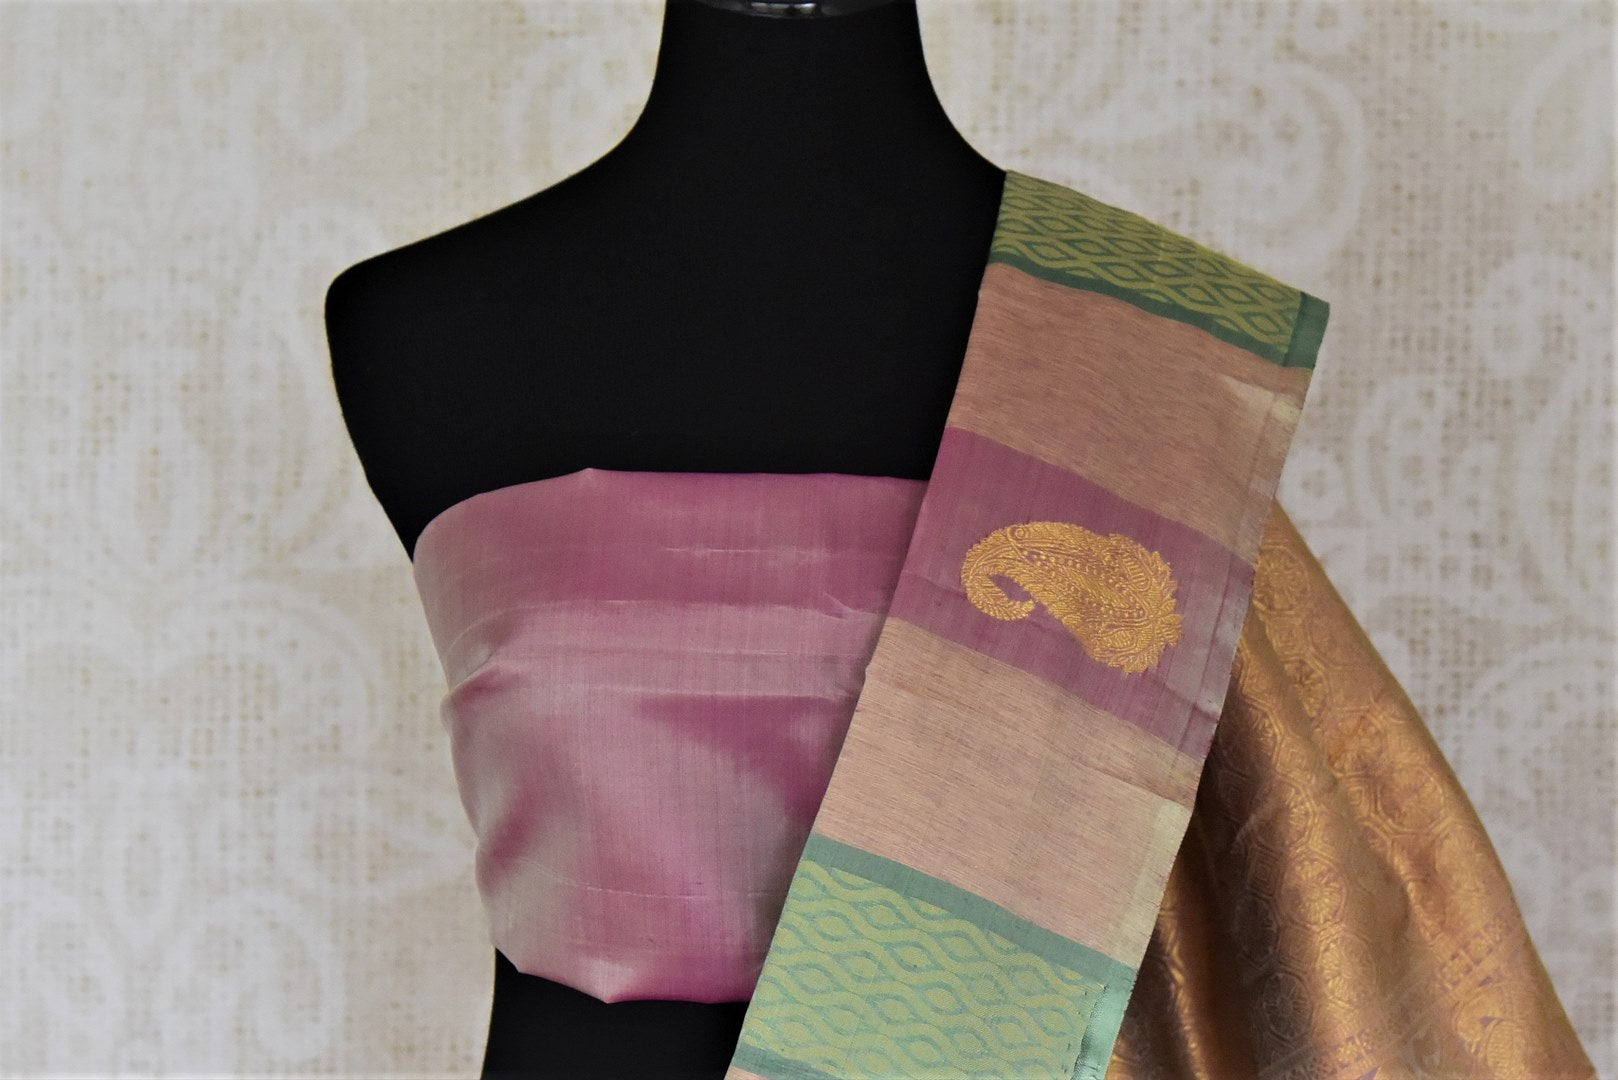 Buy beautiful multicolor stripes Kanjivaram saree with paisley zari buta. Give yourself a beautiful traditional makeover this wedding season with exquisite Kanchipuram silk sarees from Pure Elegance Indian fashion boutique in USA.-blouse pallu